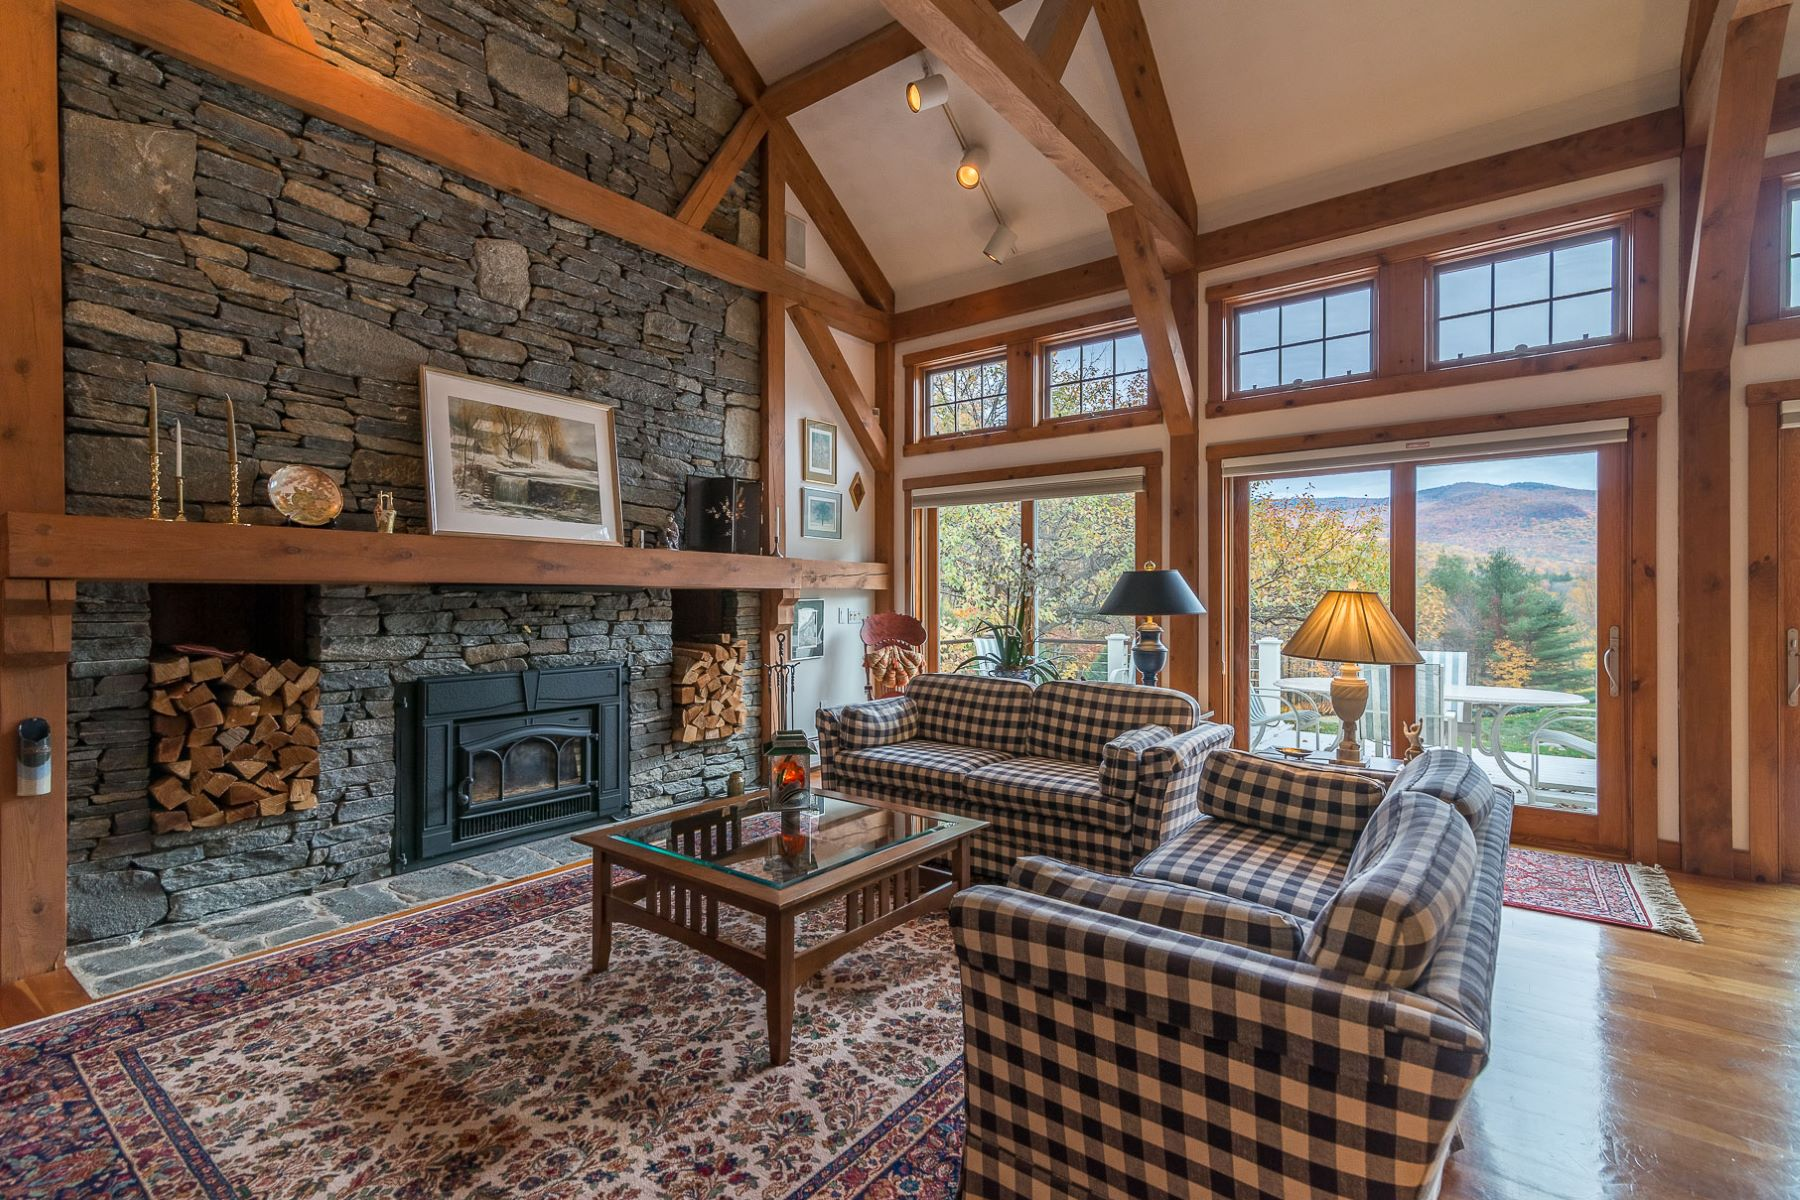 Maison unifamiliale pour l Vente à Exquisite Custom Home with Views 321 Rogers Rd Rupert, Vermont 05251 États-Unis